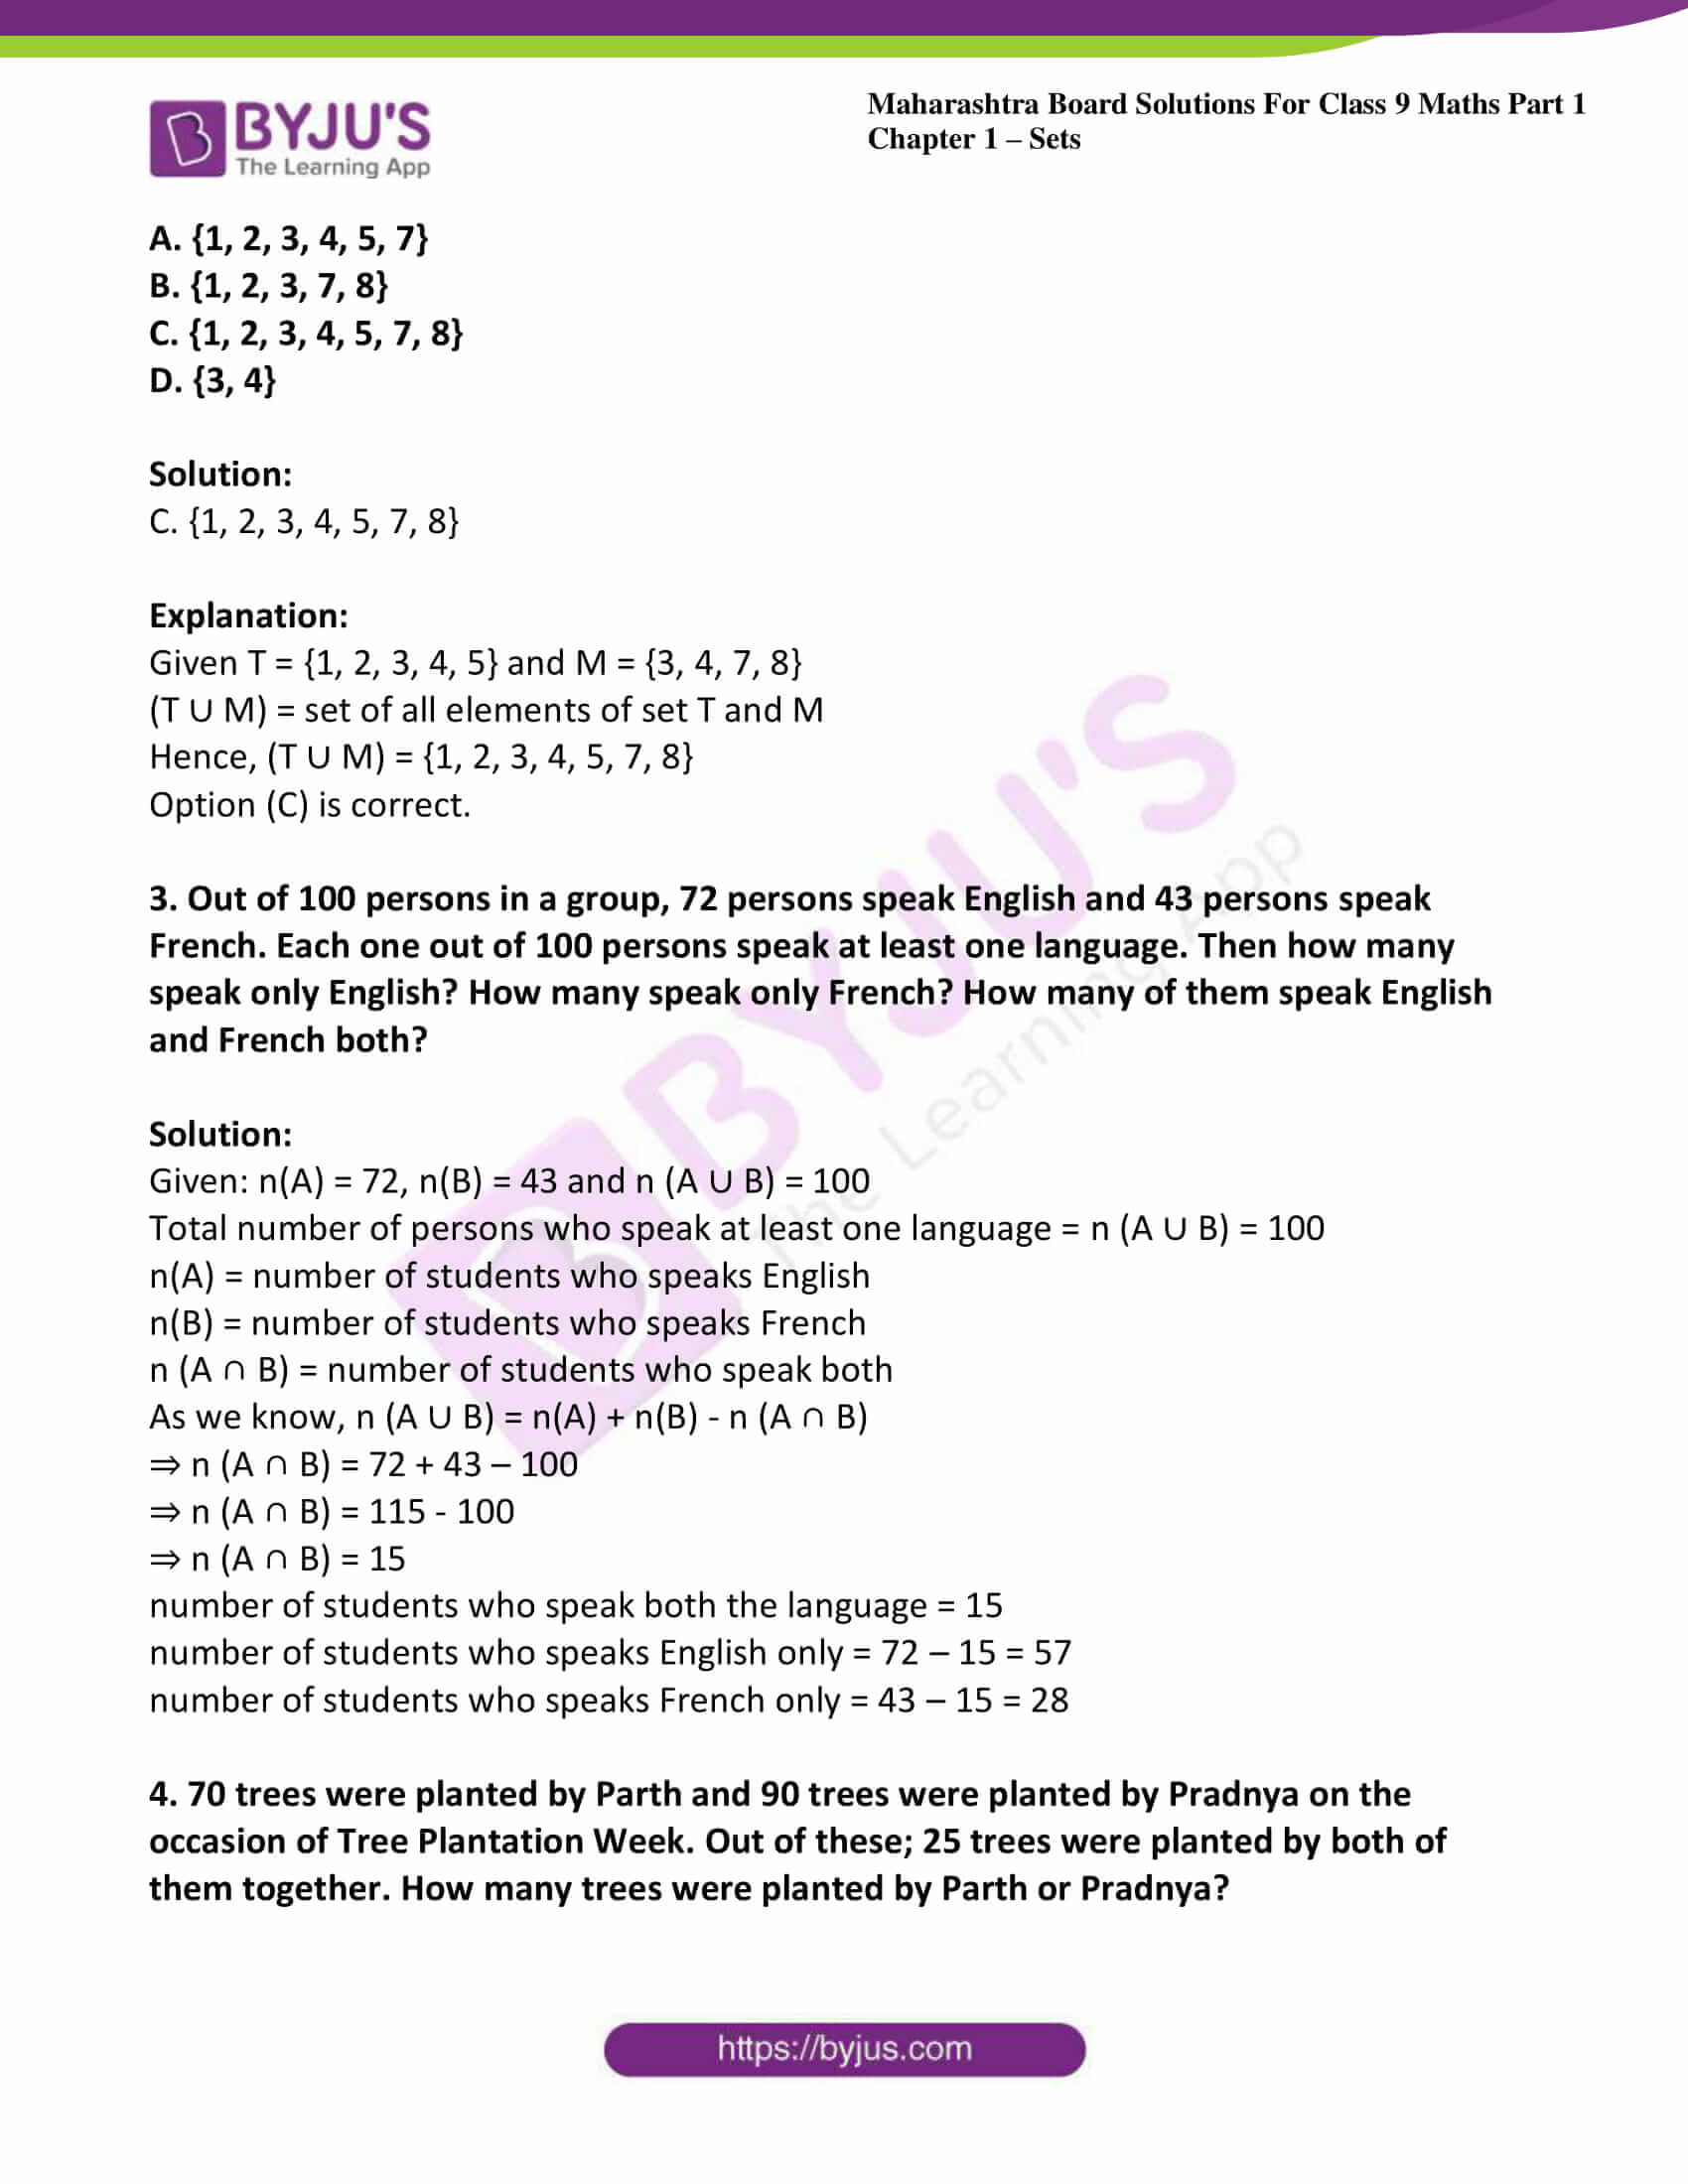 msbshse sol class 9 maths part 1 chapter 1 sets 21